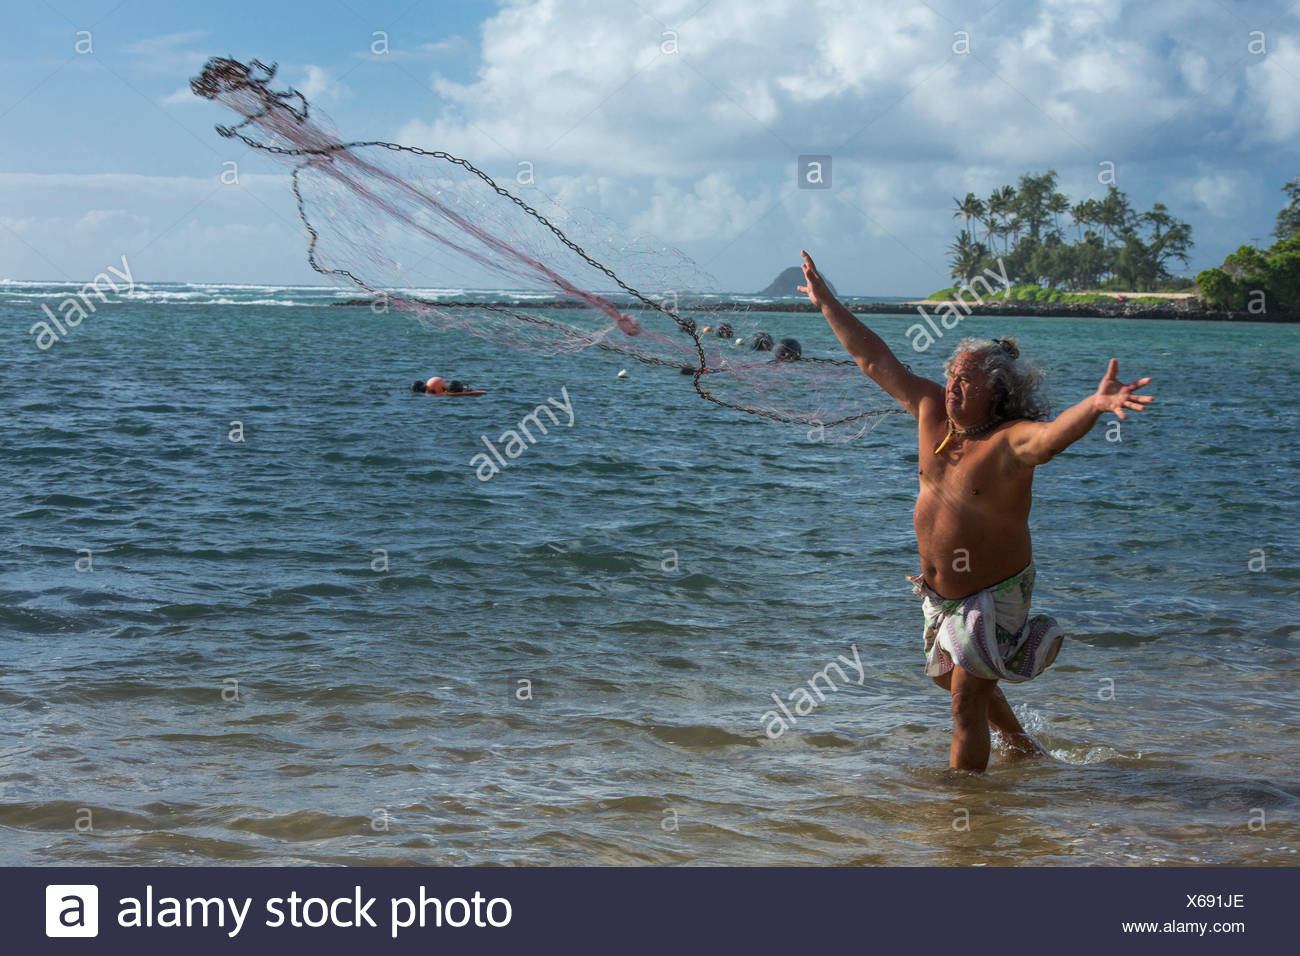 Molokai,local,Polynesian,pas de modèle-version,homme,pêche,USA,New York,Nord,pêcheur, Photo Stock